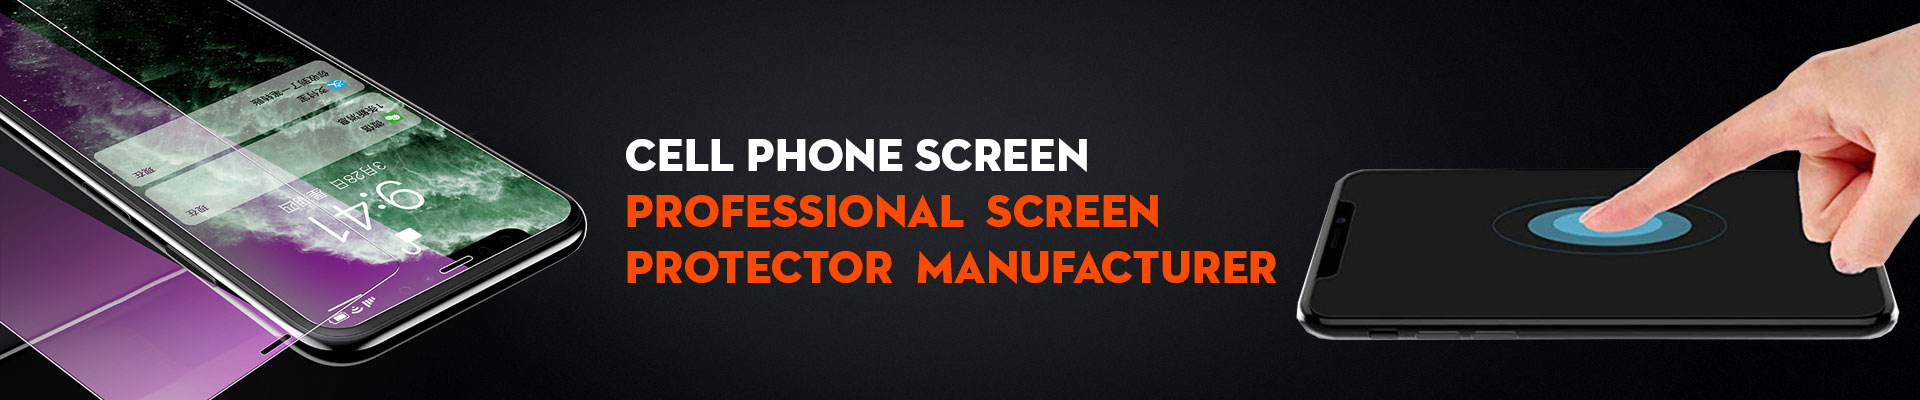 CELL PHONE SCREEN PROTECTOR MANUFACTURER